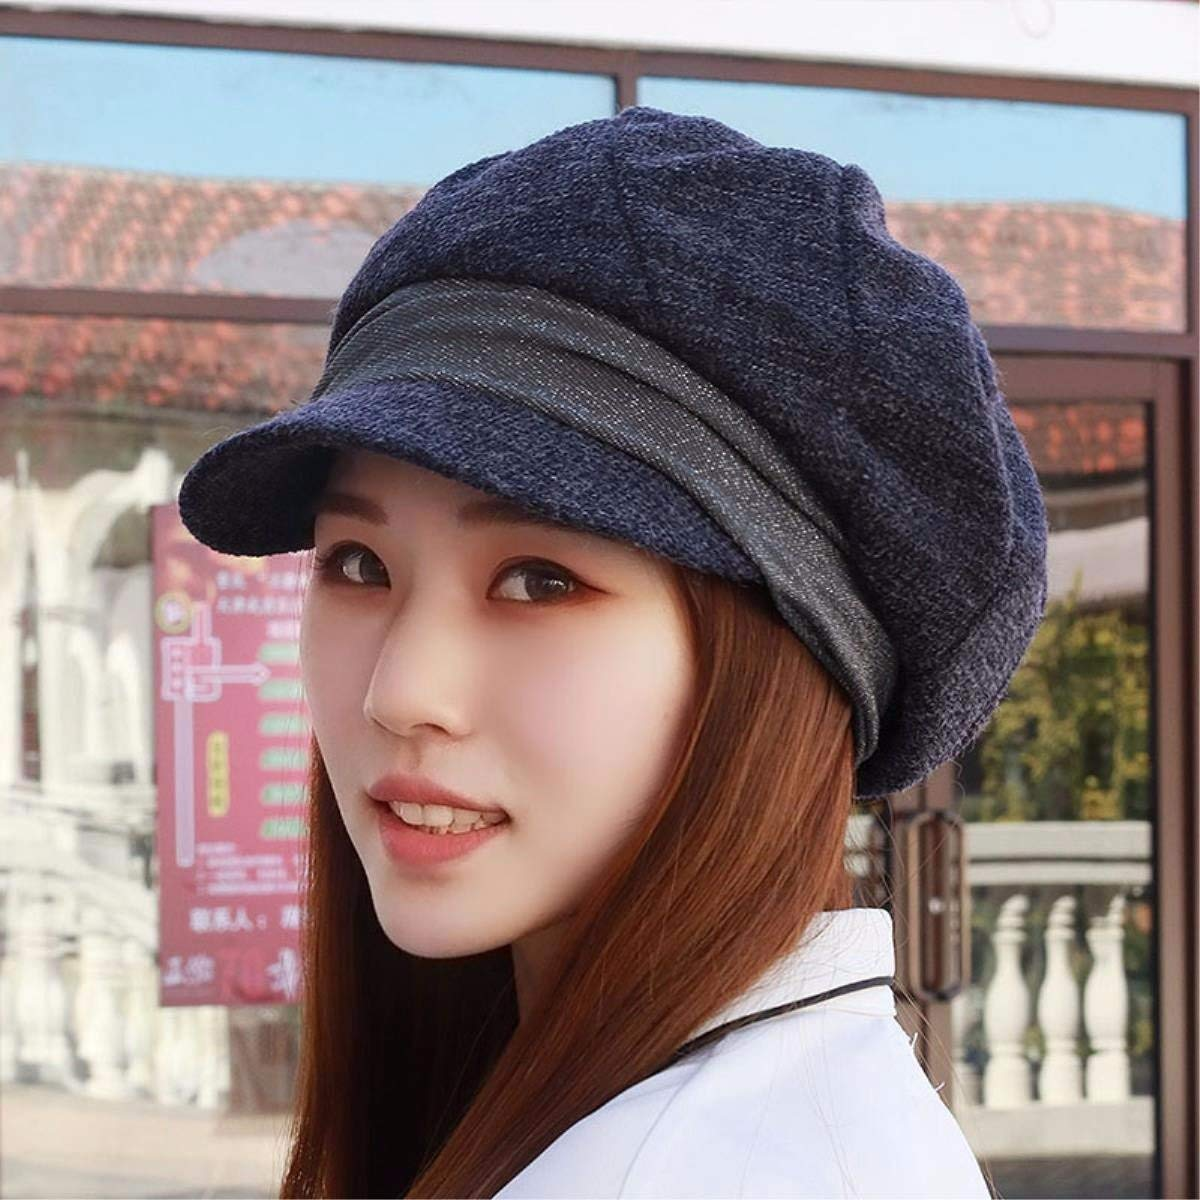 Thundertechs Hat Female Spring and Summer Beret Cap Cap of Yuan Quality Video face h-Cap Mother Cap (Color : Grey, Size : M)